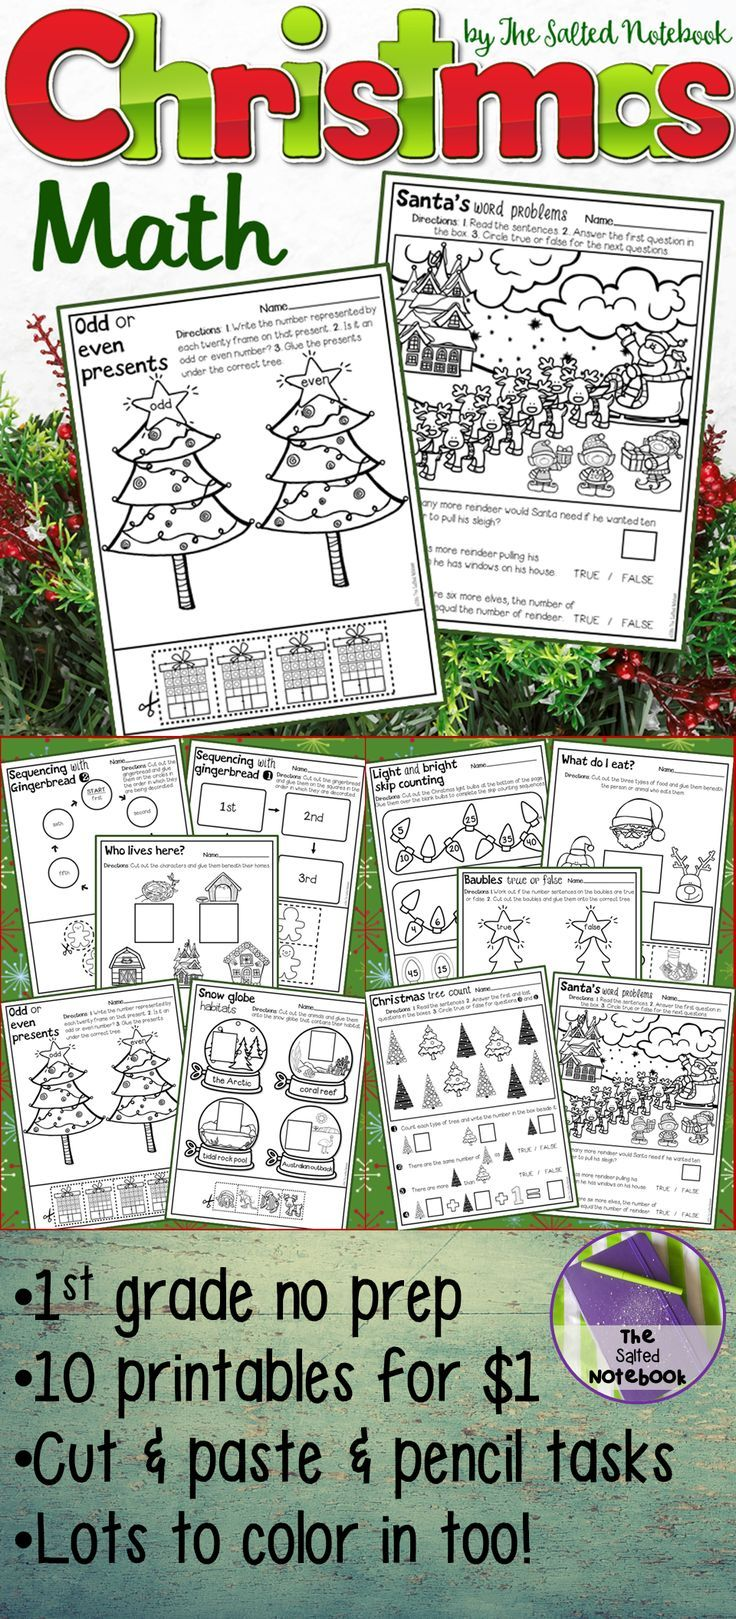 worksheet Visual Discrimination Worksheets For First Grade christmas math activities maths and for first grade higher level kindergarten no prep cut and